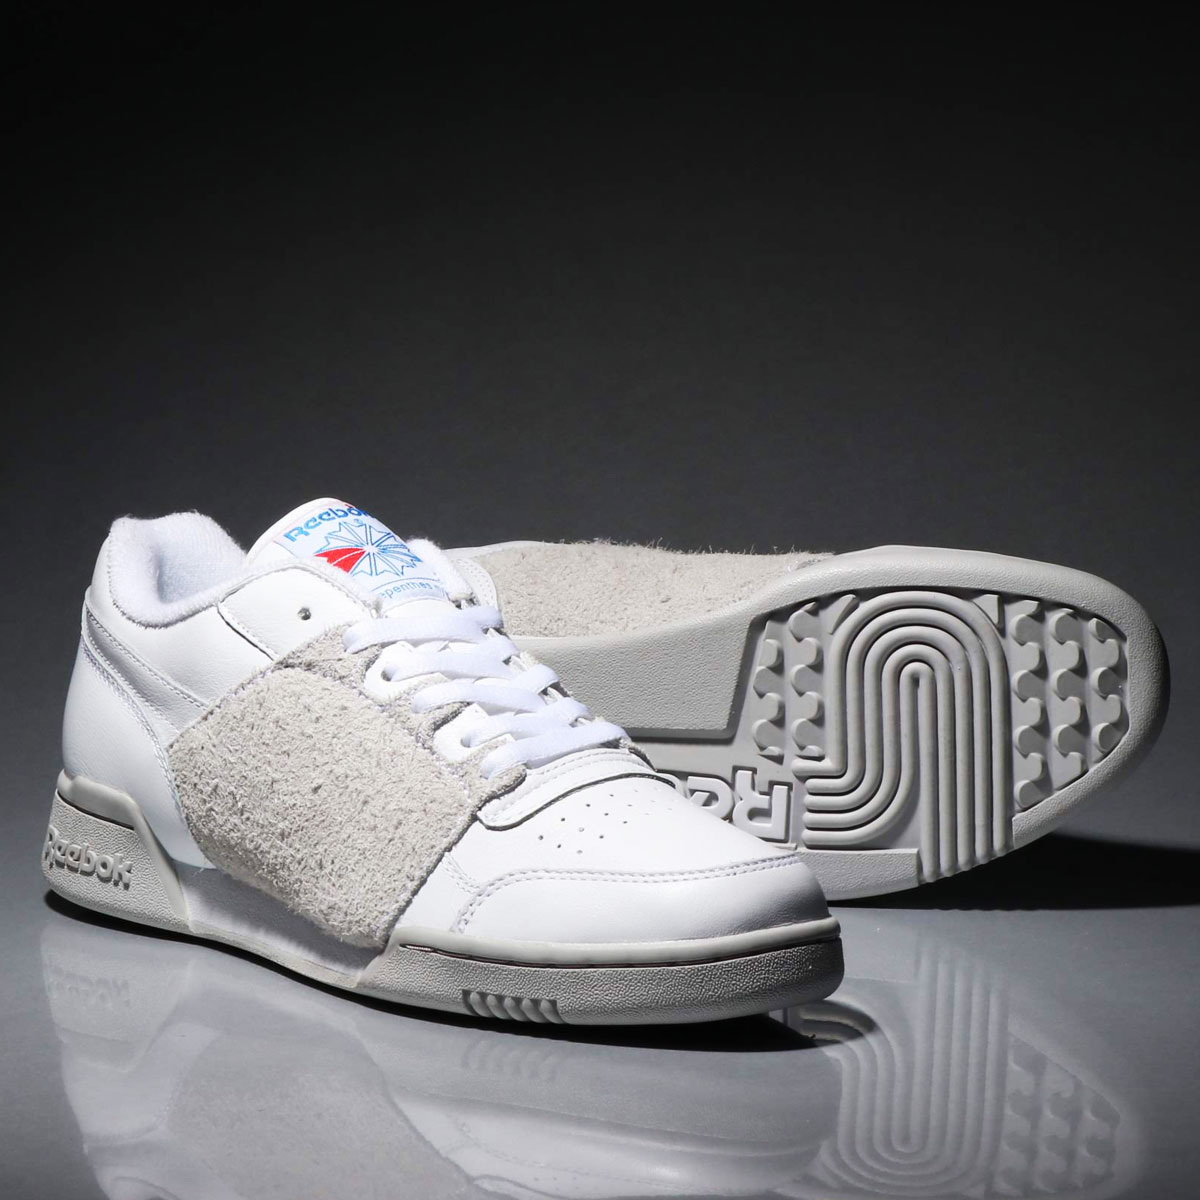 Reebok WORKOUT PLUS NEPENTHES (リーボック ワークアウト プラス ネペンテス)WHT/STEEL/BLUE【メンズ スニーカー】19SS-S